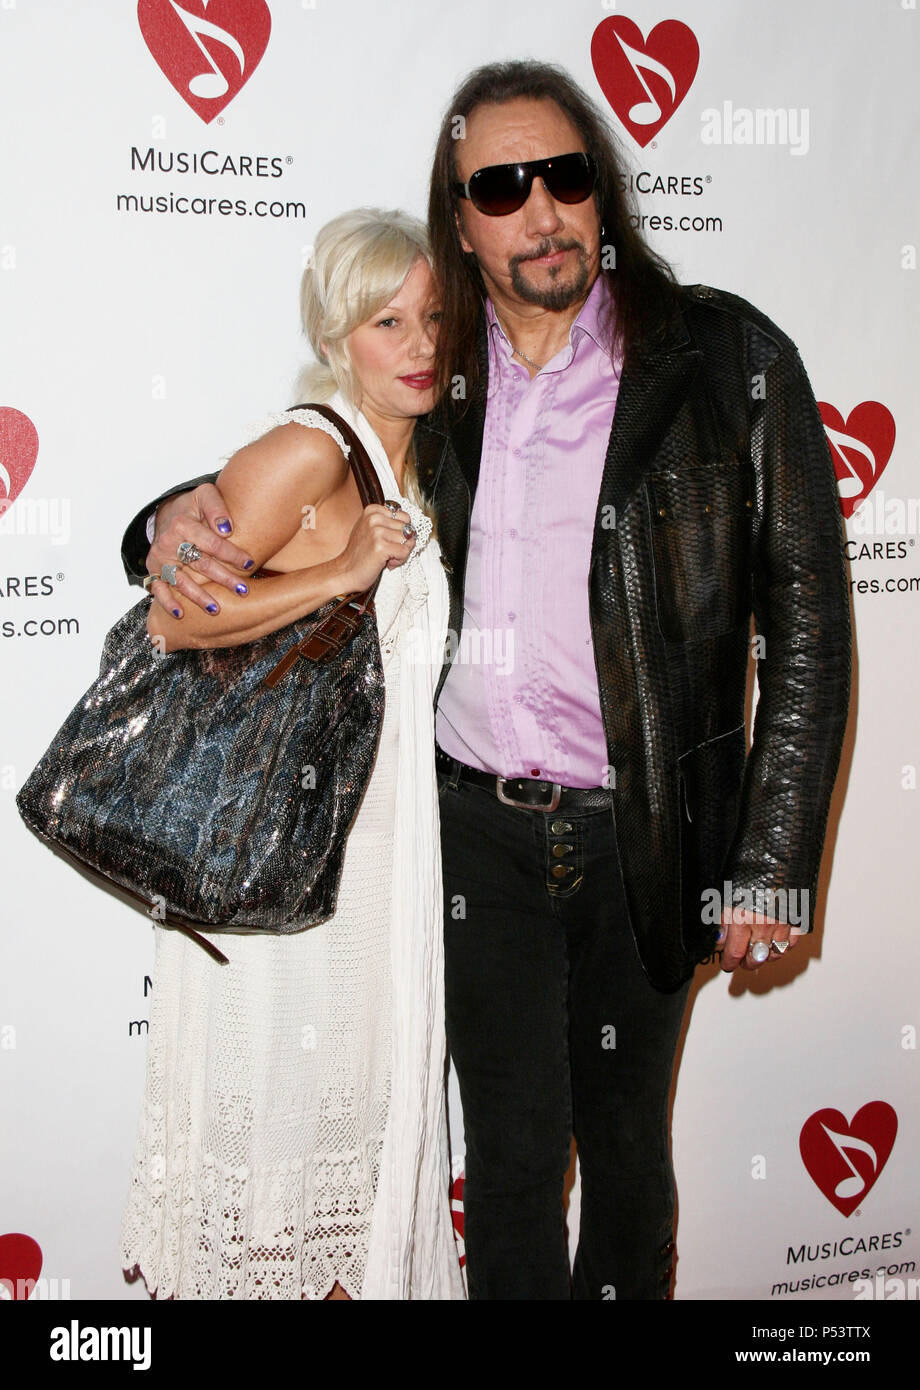 Ace Frehley And Fiance Rachael Gordon 07 Sixth Annual Musicares